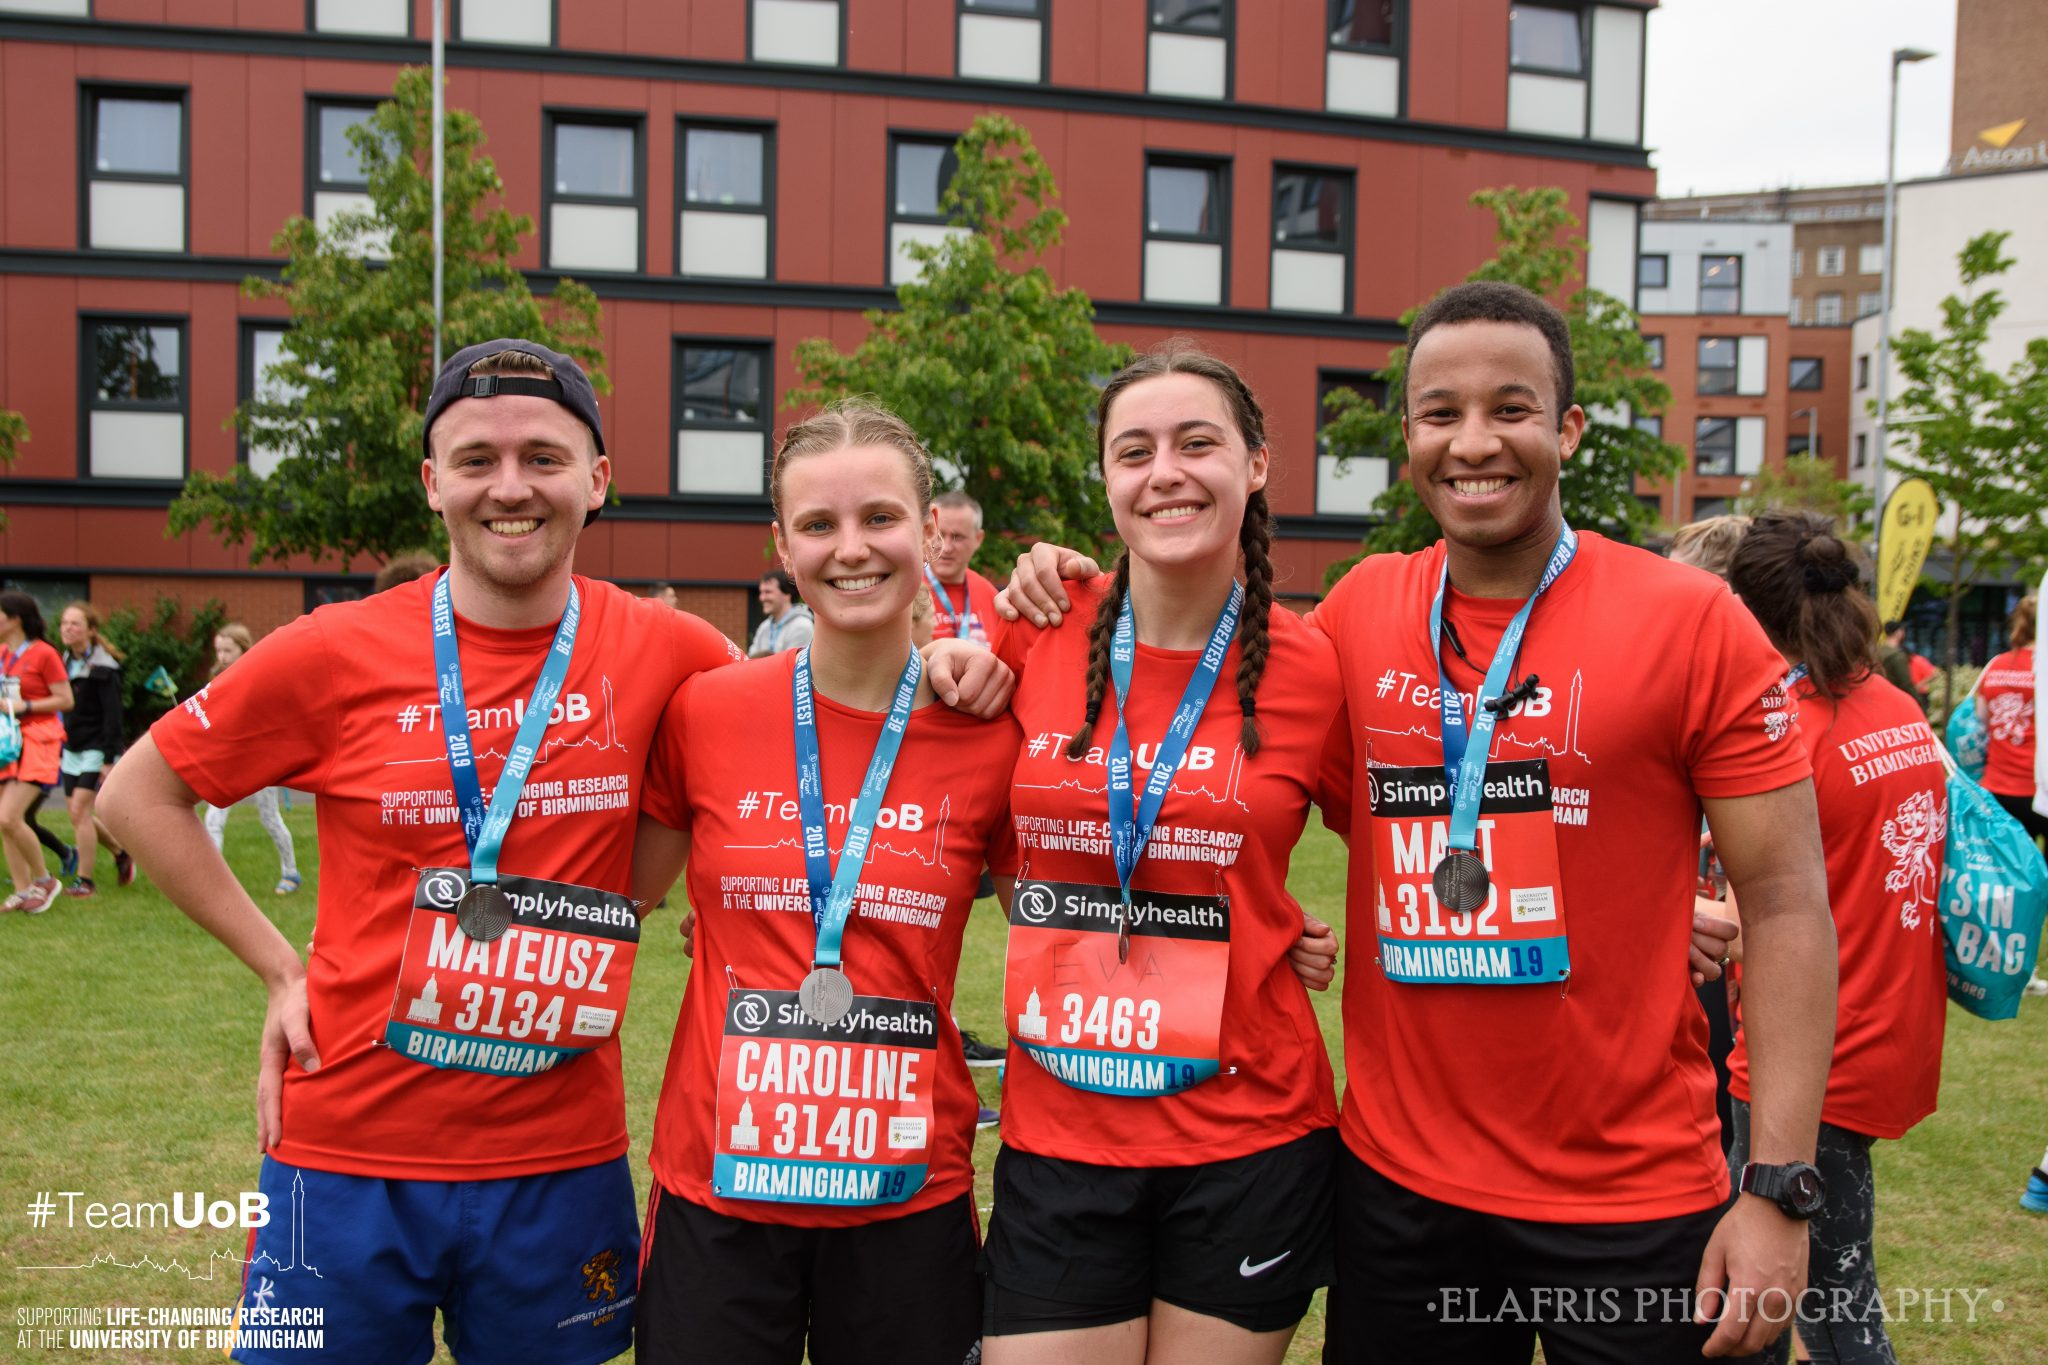 Four members of Team UoB with medals after Great Birmingham 10k